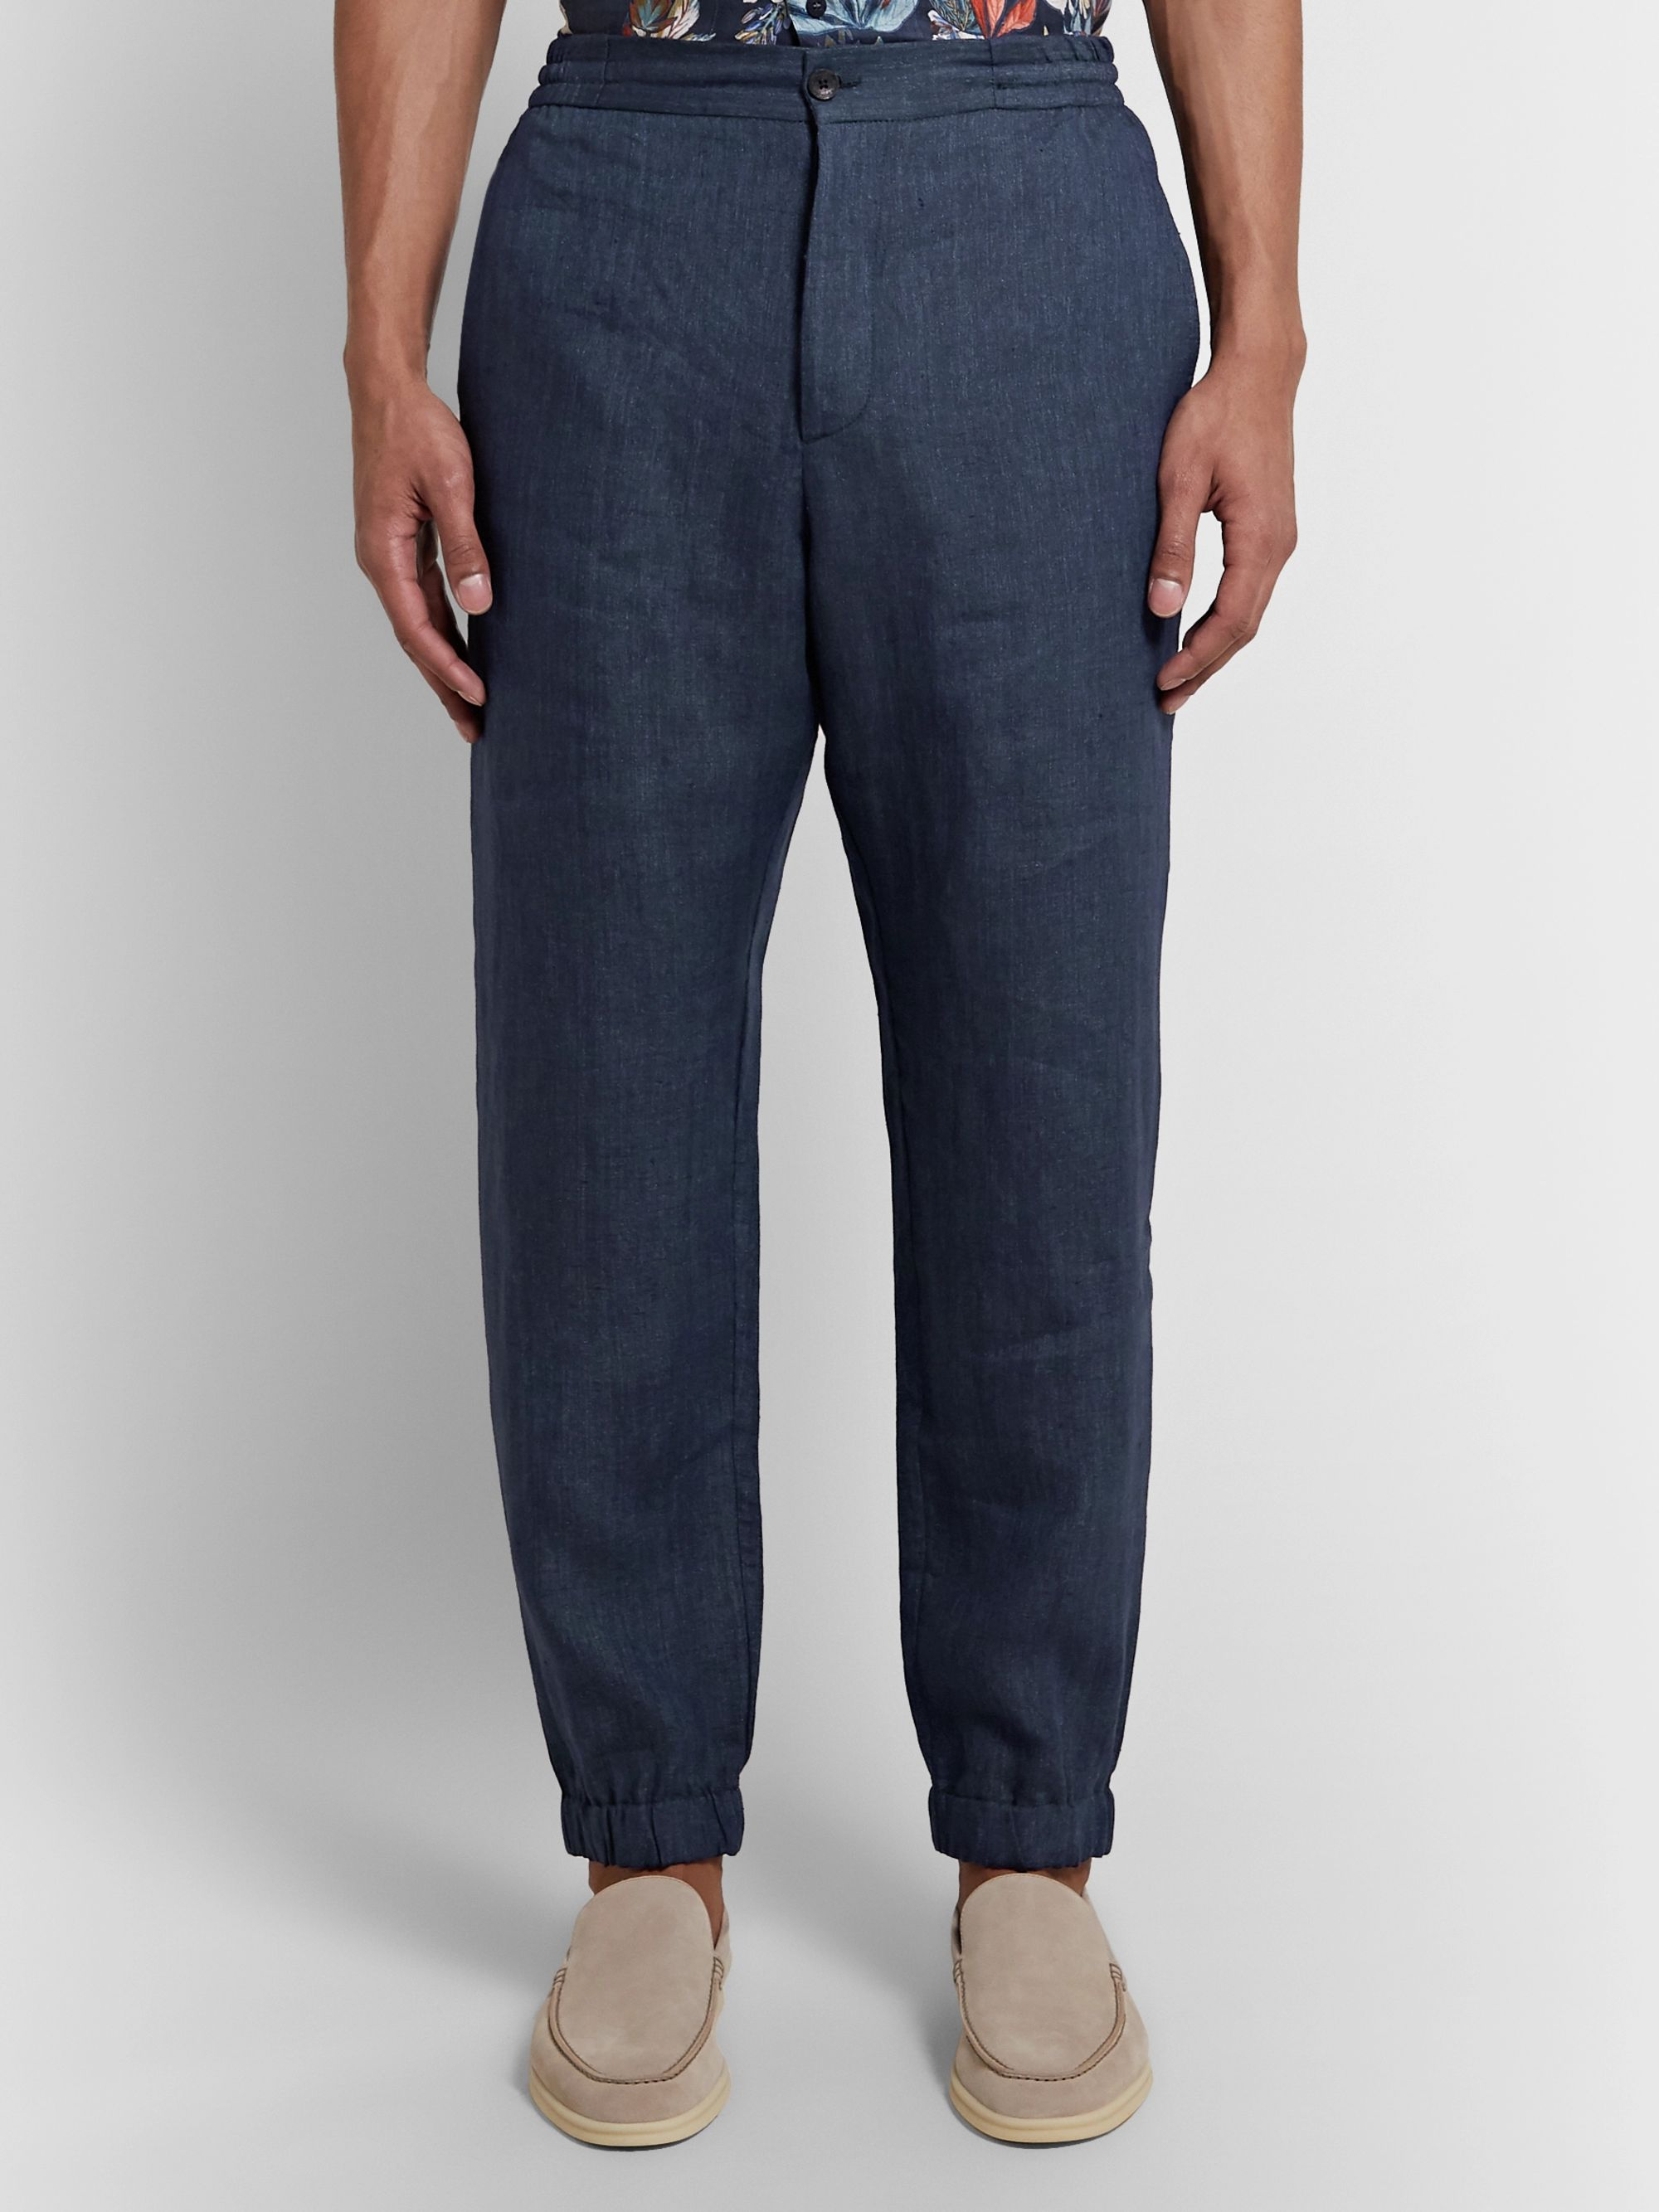 Etro Navy Linen Drawstring Trousers